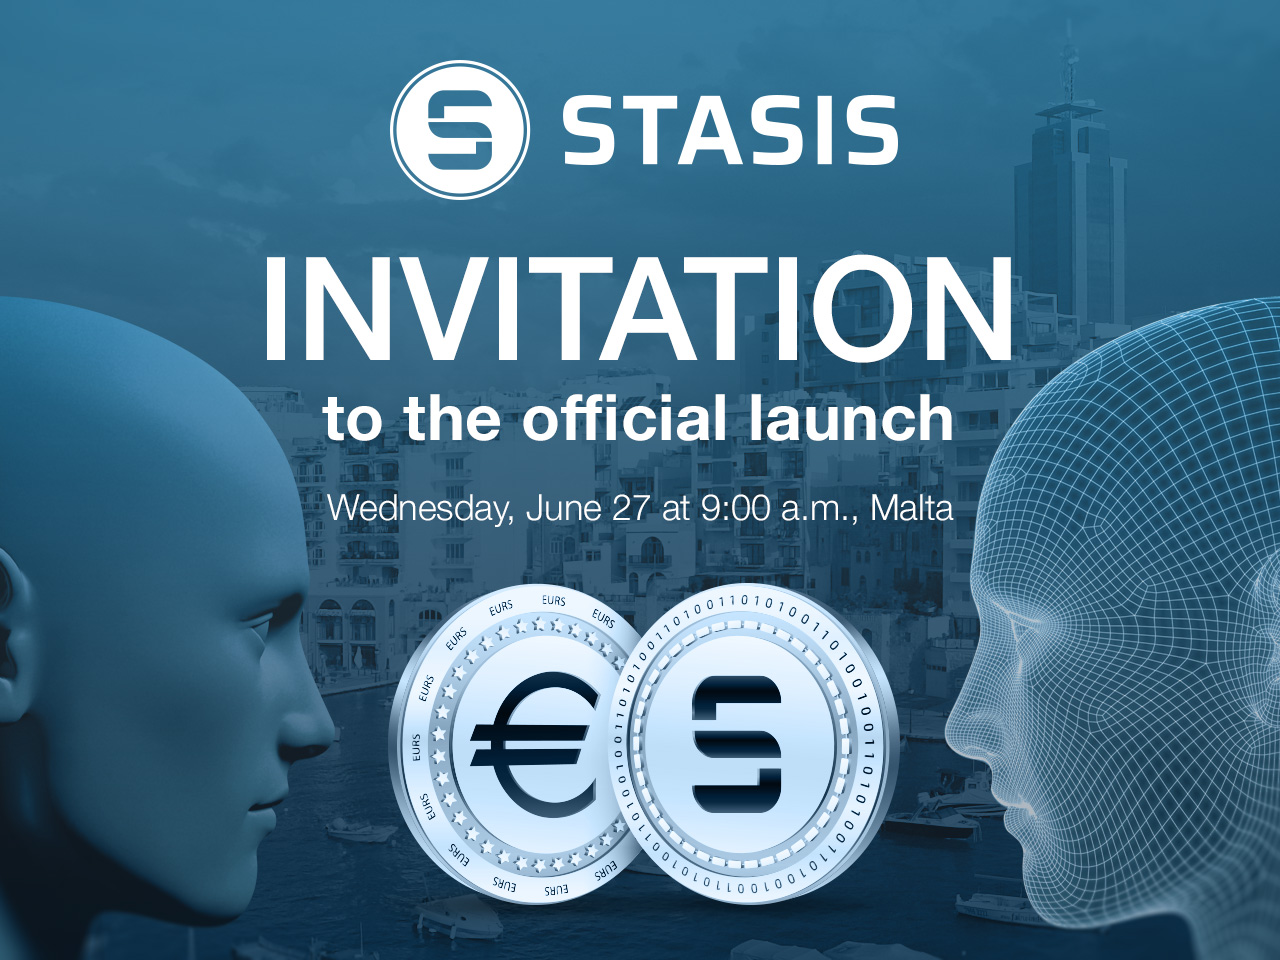 Invitation to the official launch